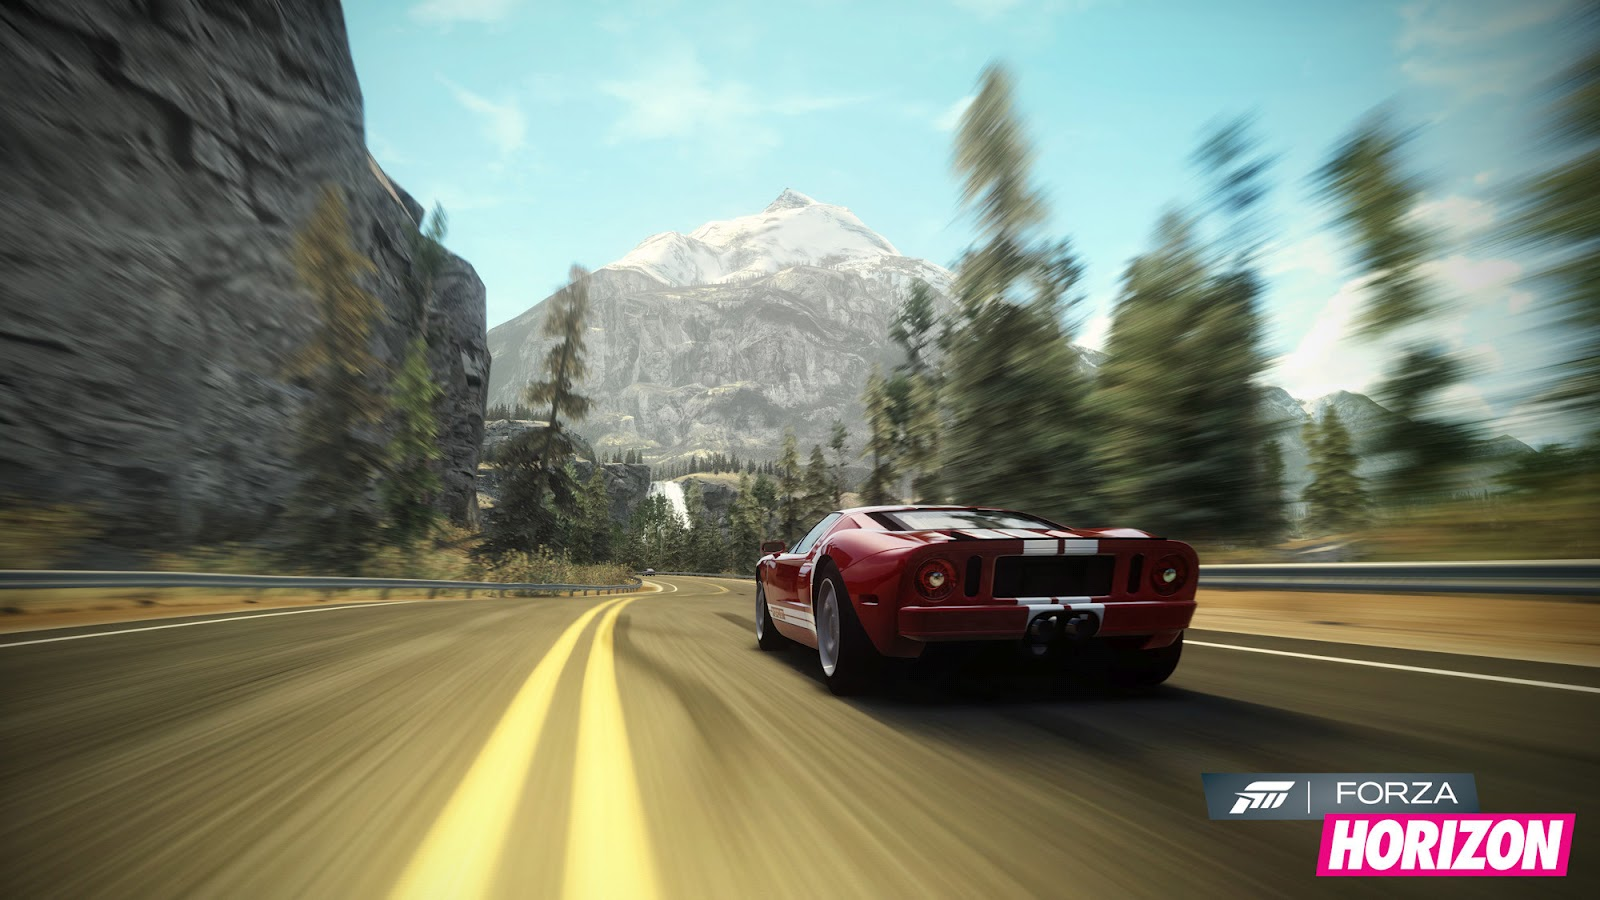 Forza Horizon HD & Widescreen Wallpaper 0.41242992497238